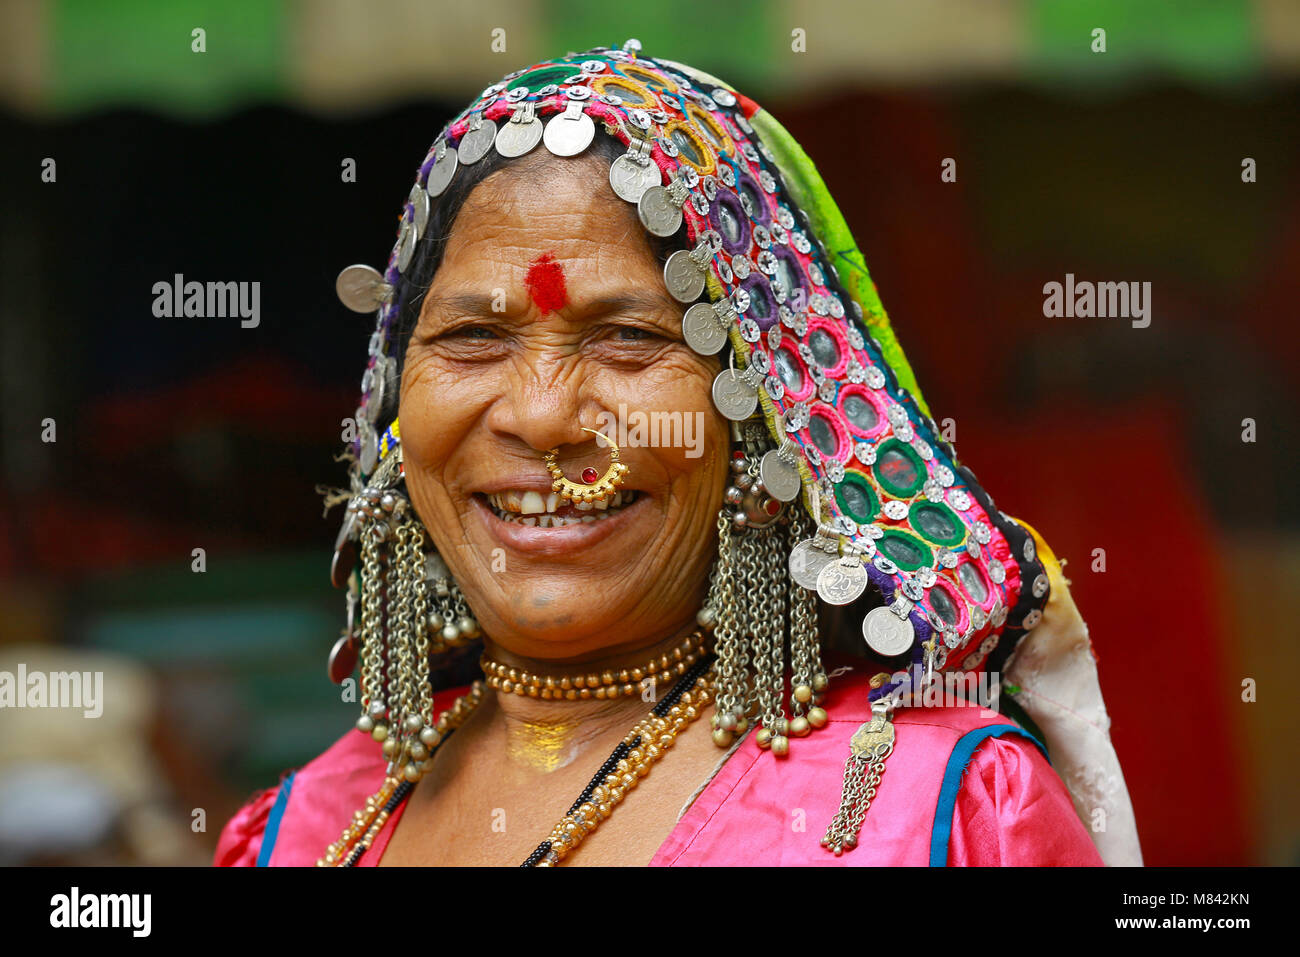 Close-up of women in traditional dress with earrings and nose ...